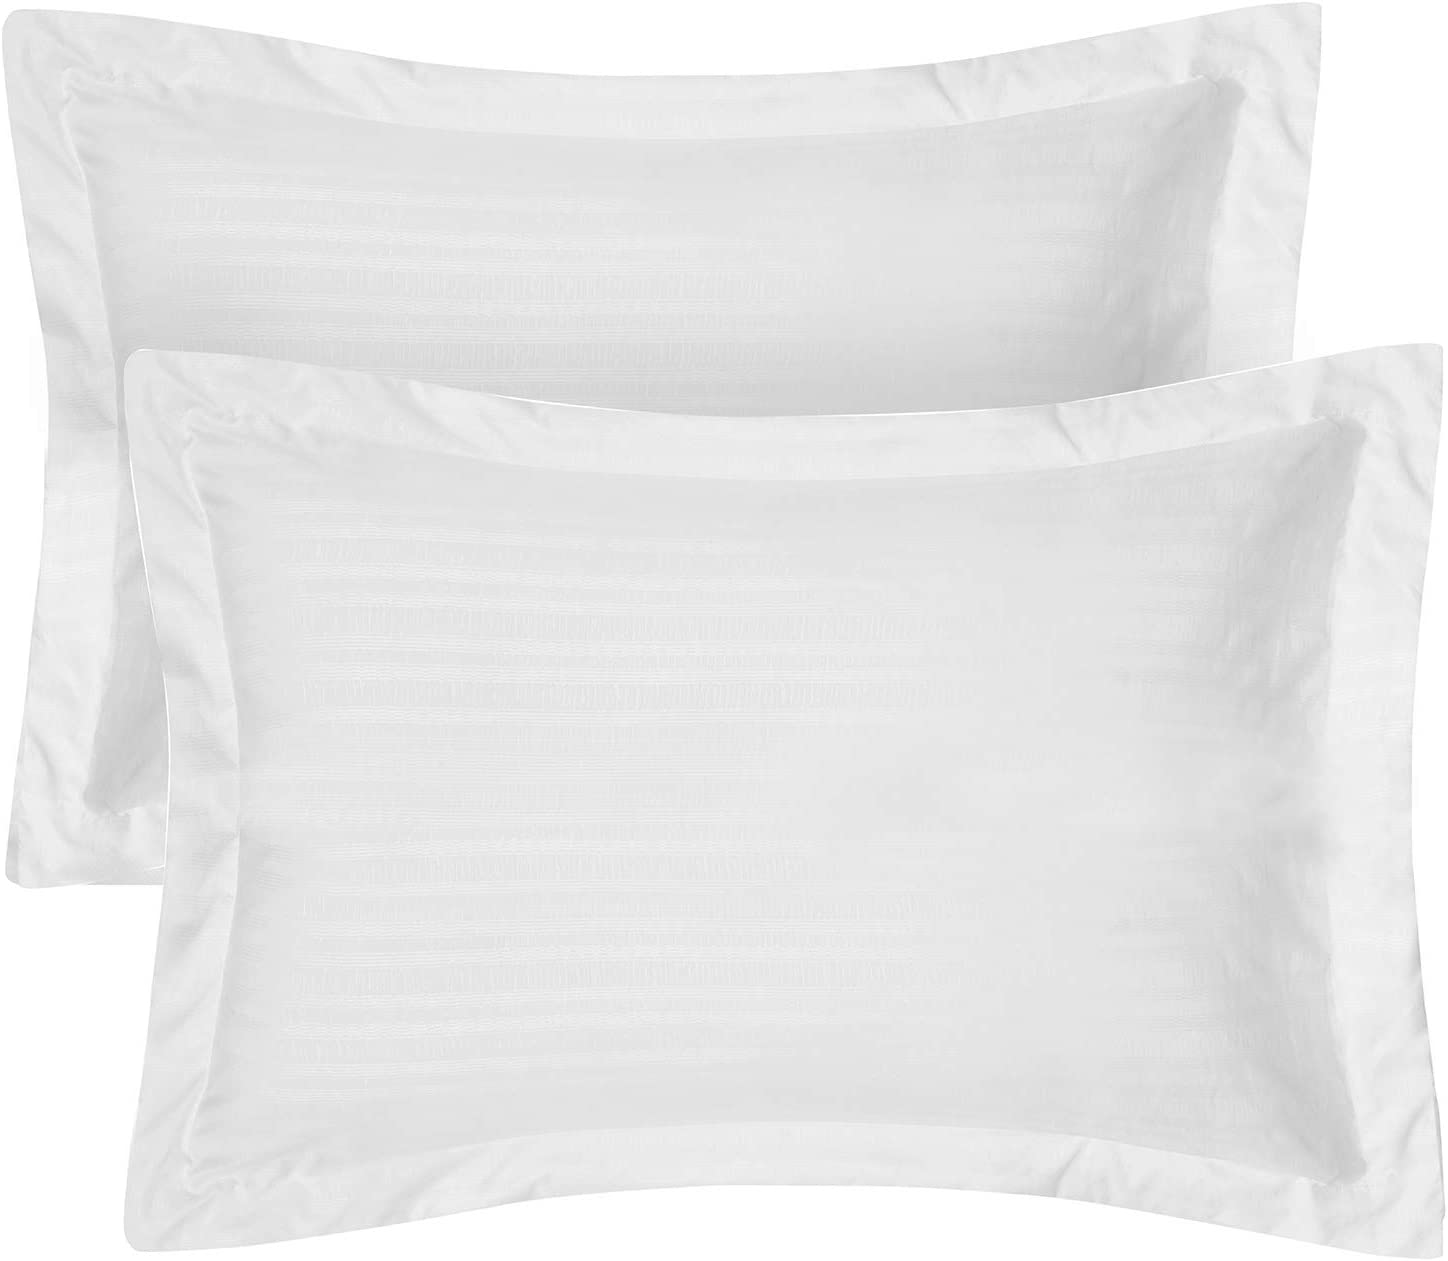 "Hansleep Pillow Shams Set of 2 Standard Size, Bedding Embossed Ultra Soft Brushed Pillow Sham, Machine Washable (White, Queen 20x30"")"